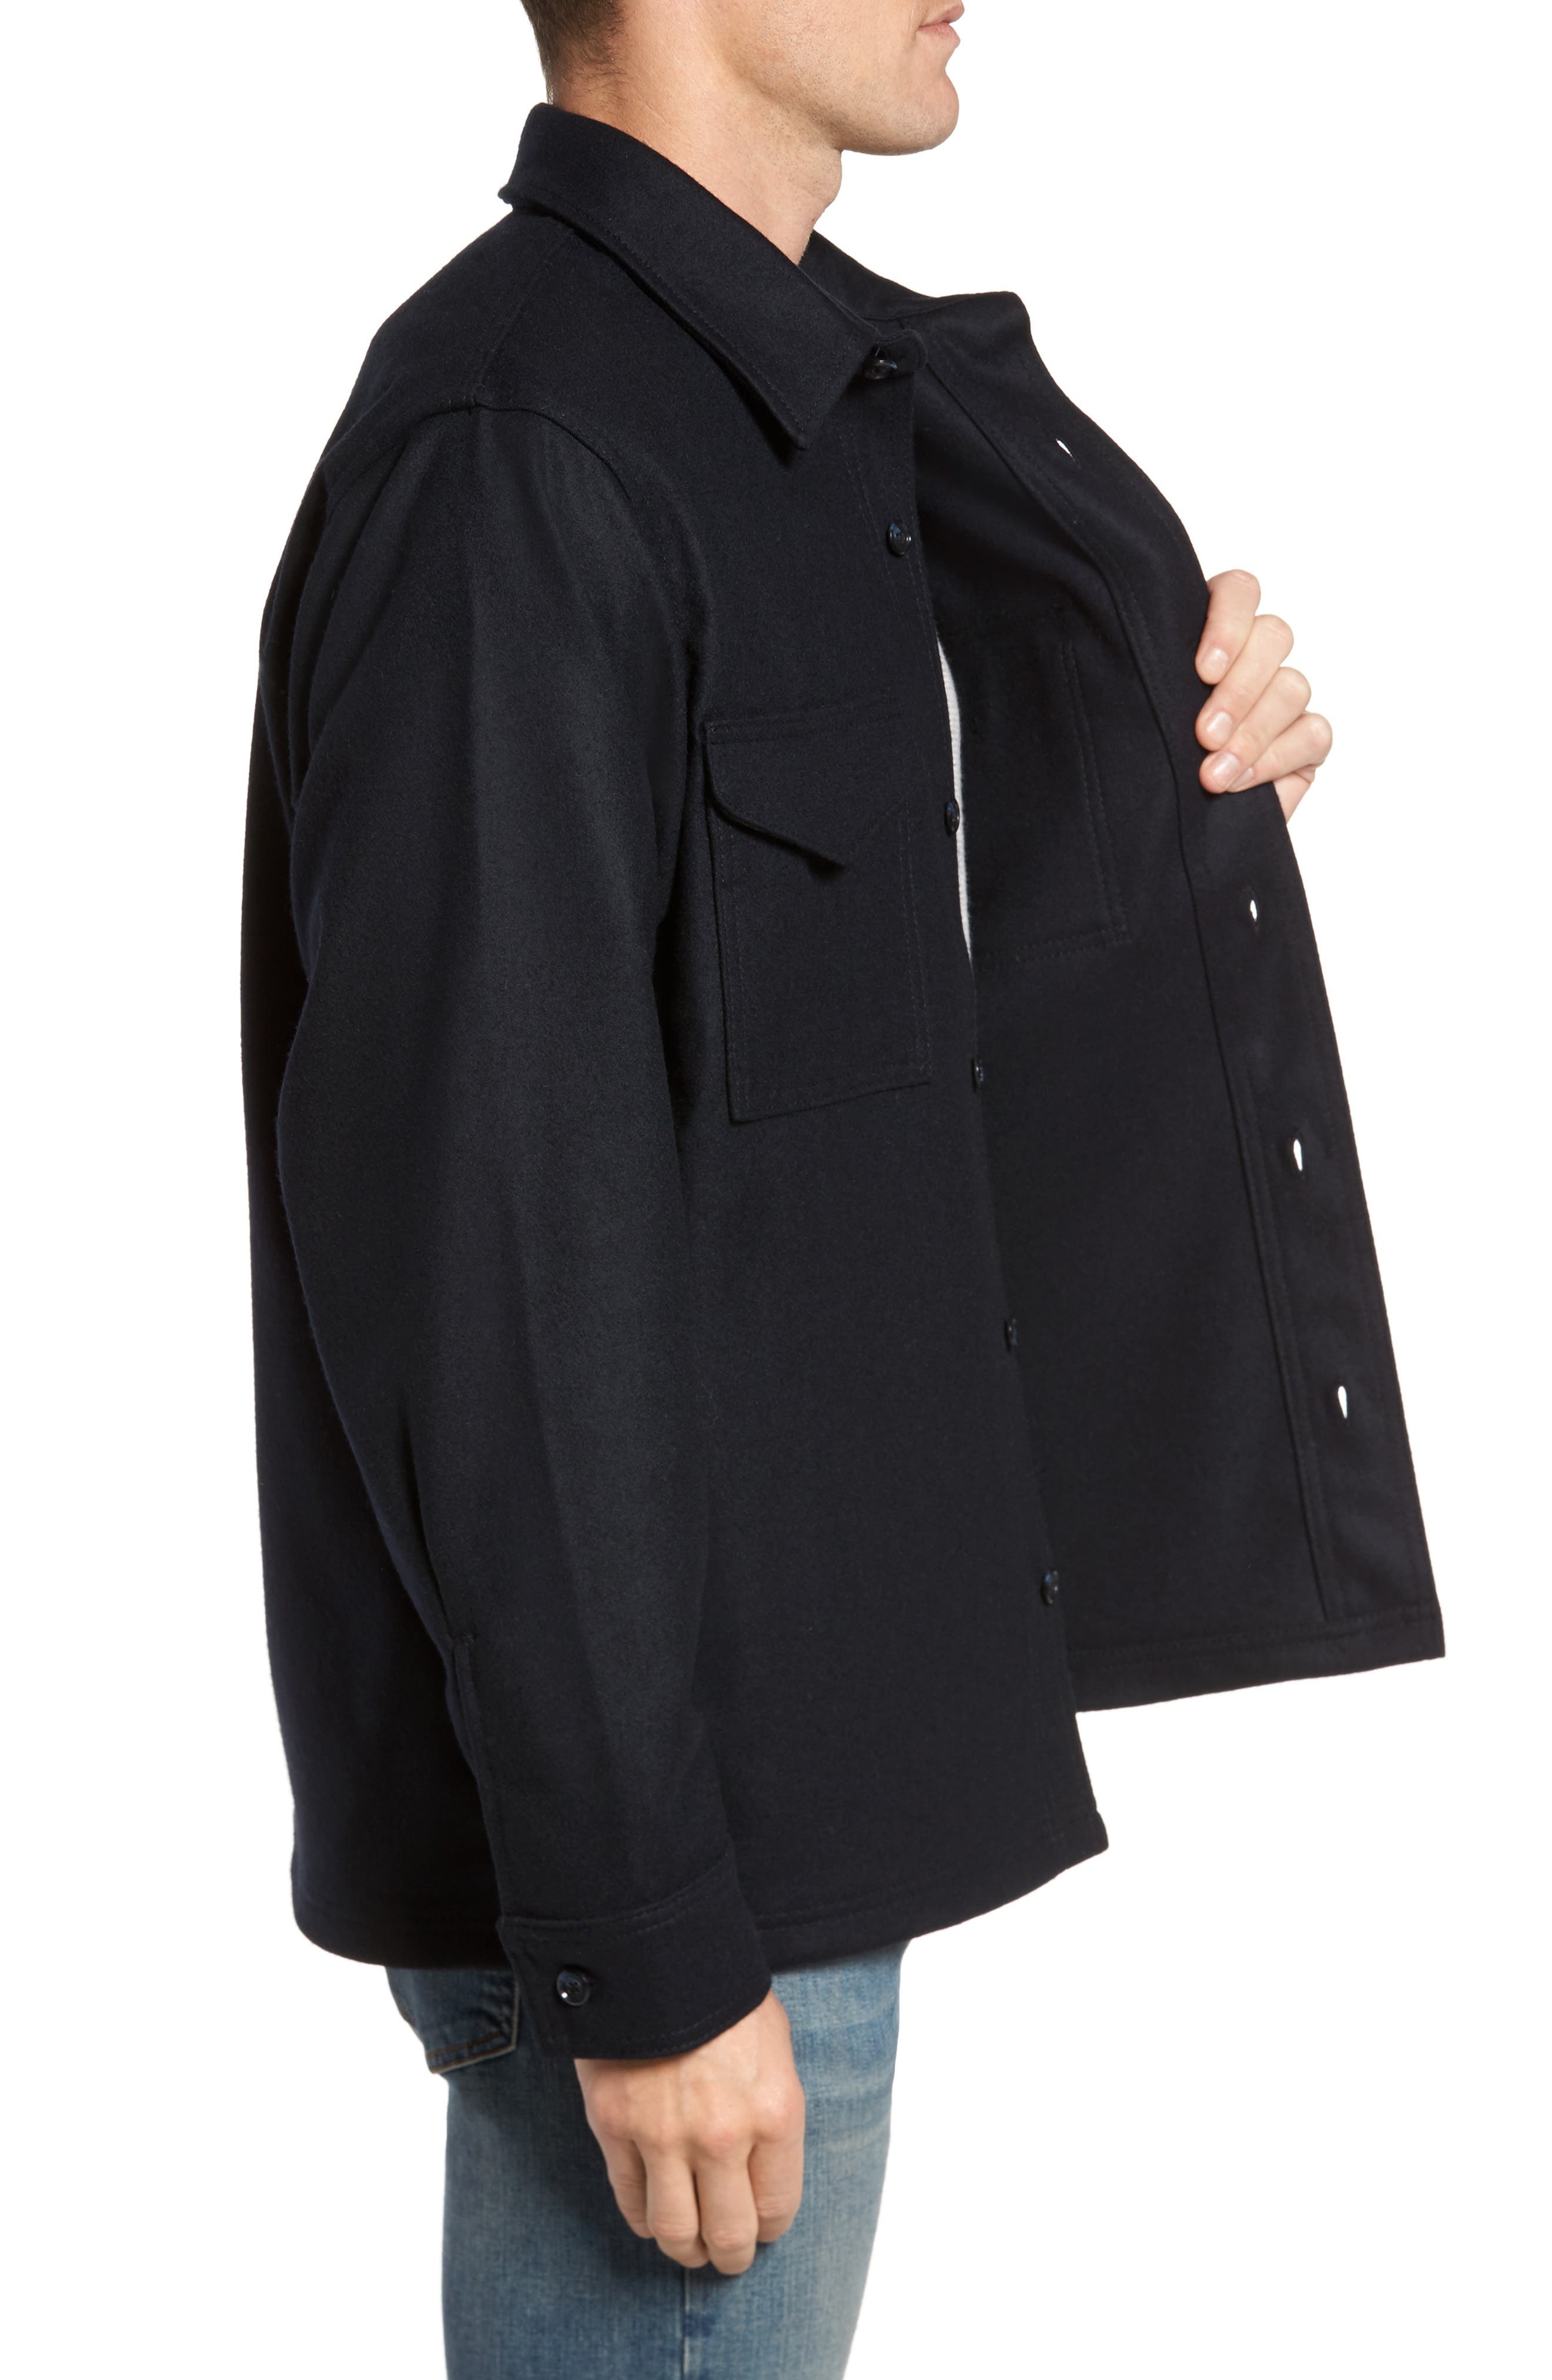 Jac-Shirt Wool Jacket,                             Alternate thumbnail 3, color,                             410